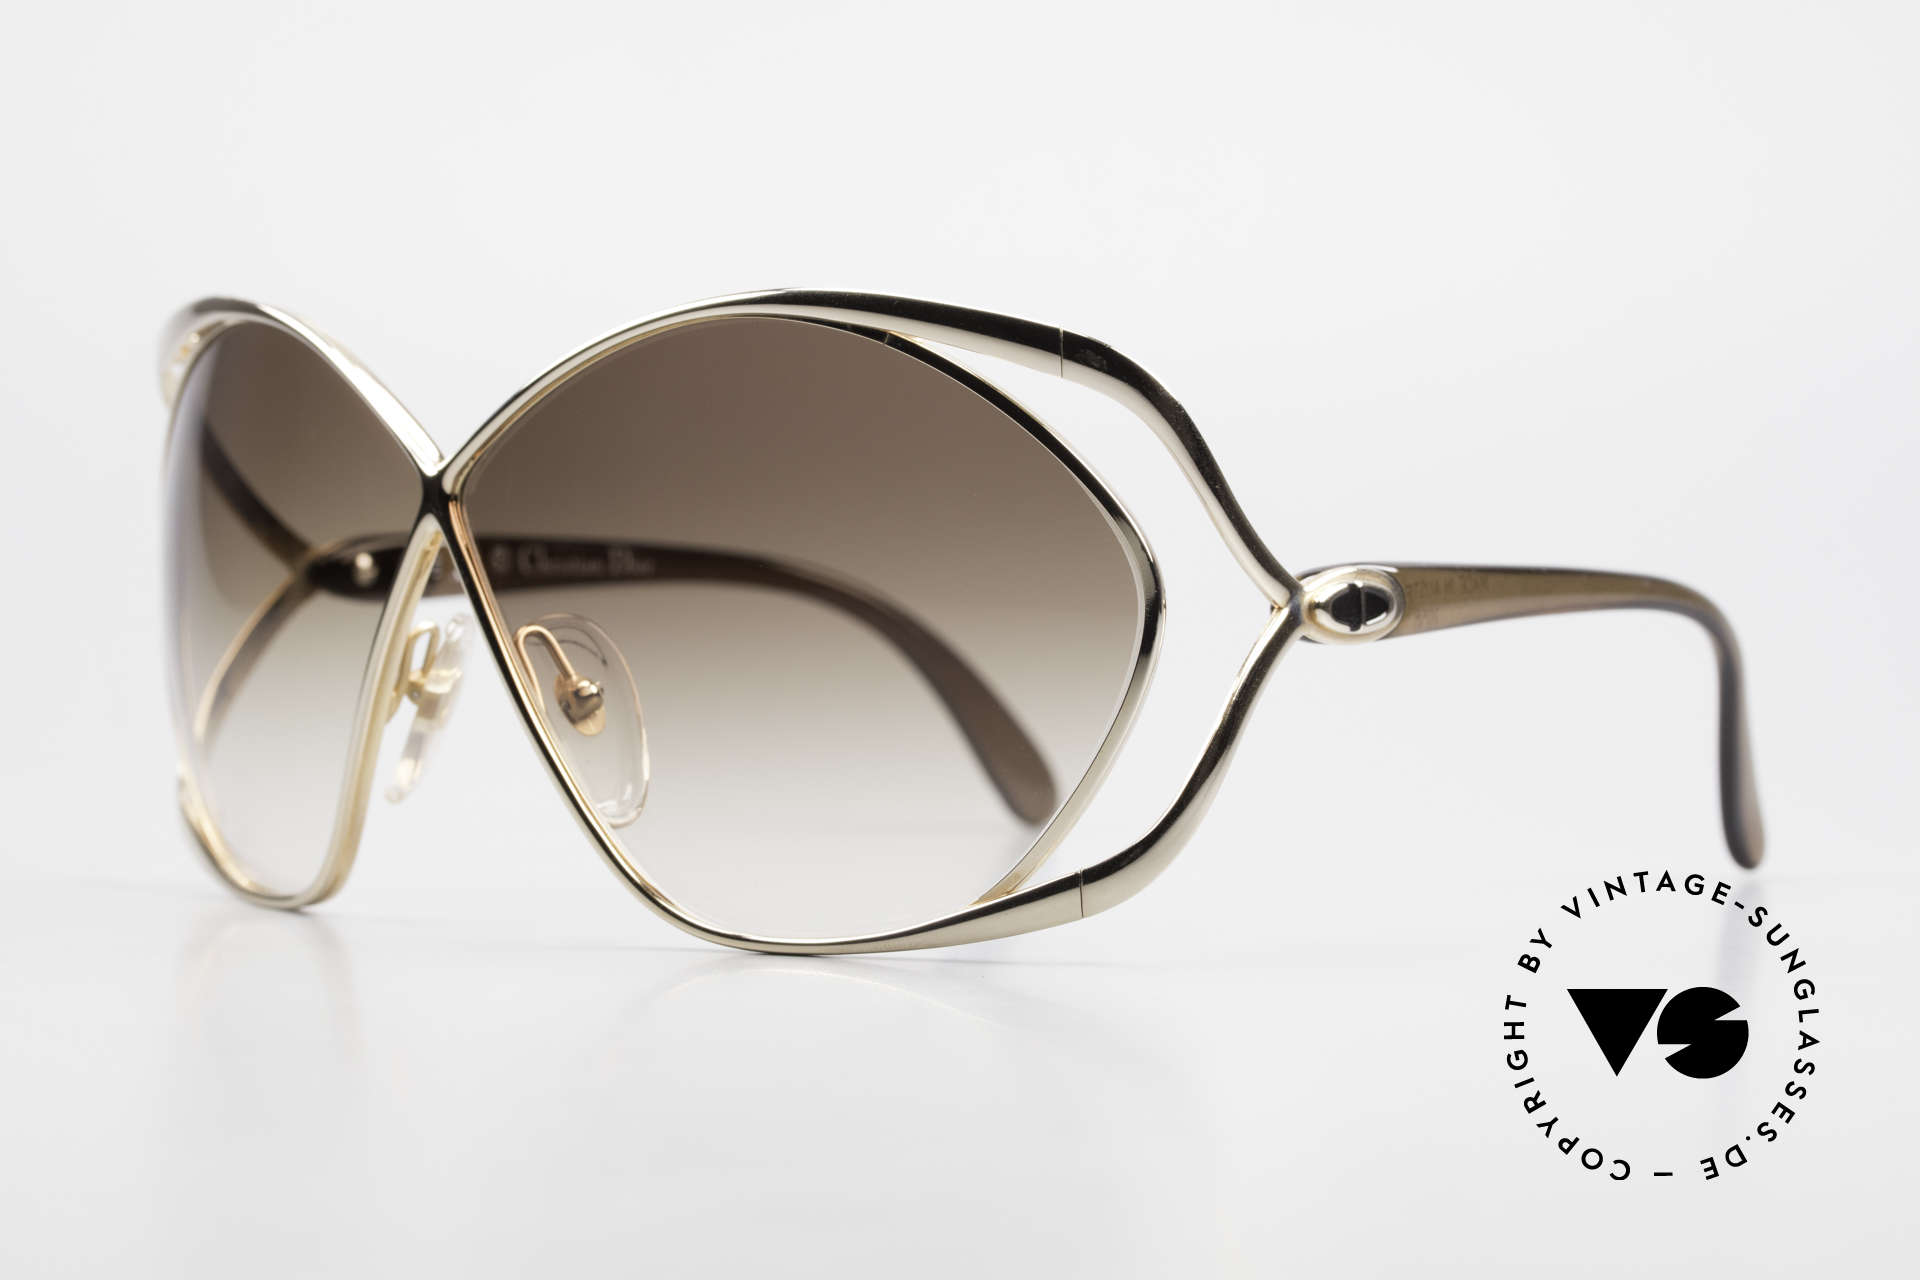 Christian Dior 2056 Butterfly 80's Sunglasses, famous 'butterfly-design' with huge gradient lenses, Made for Women